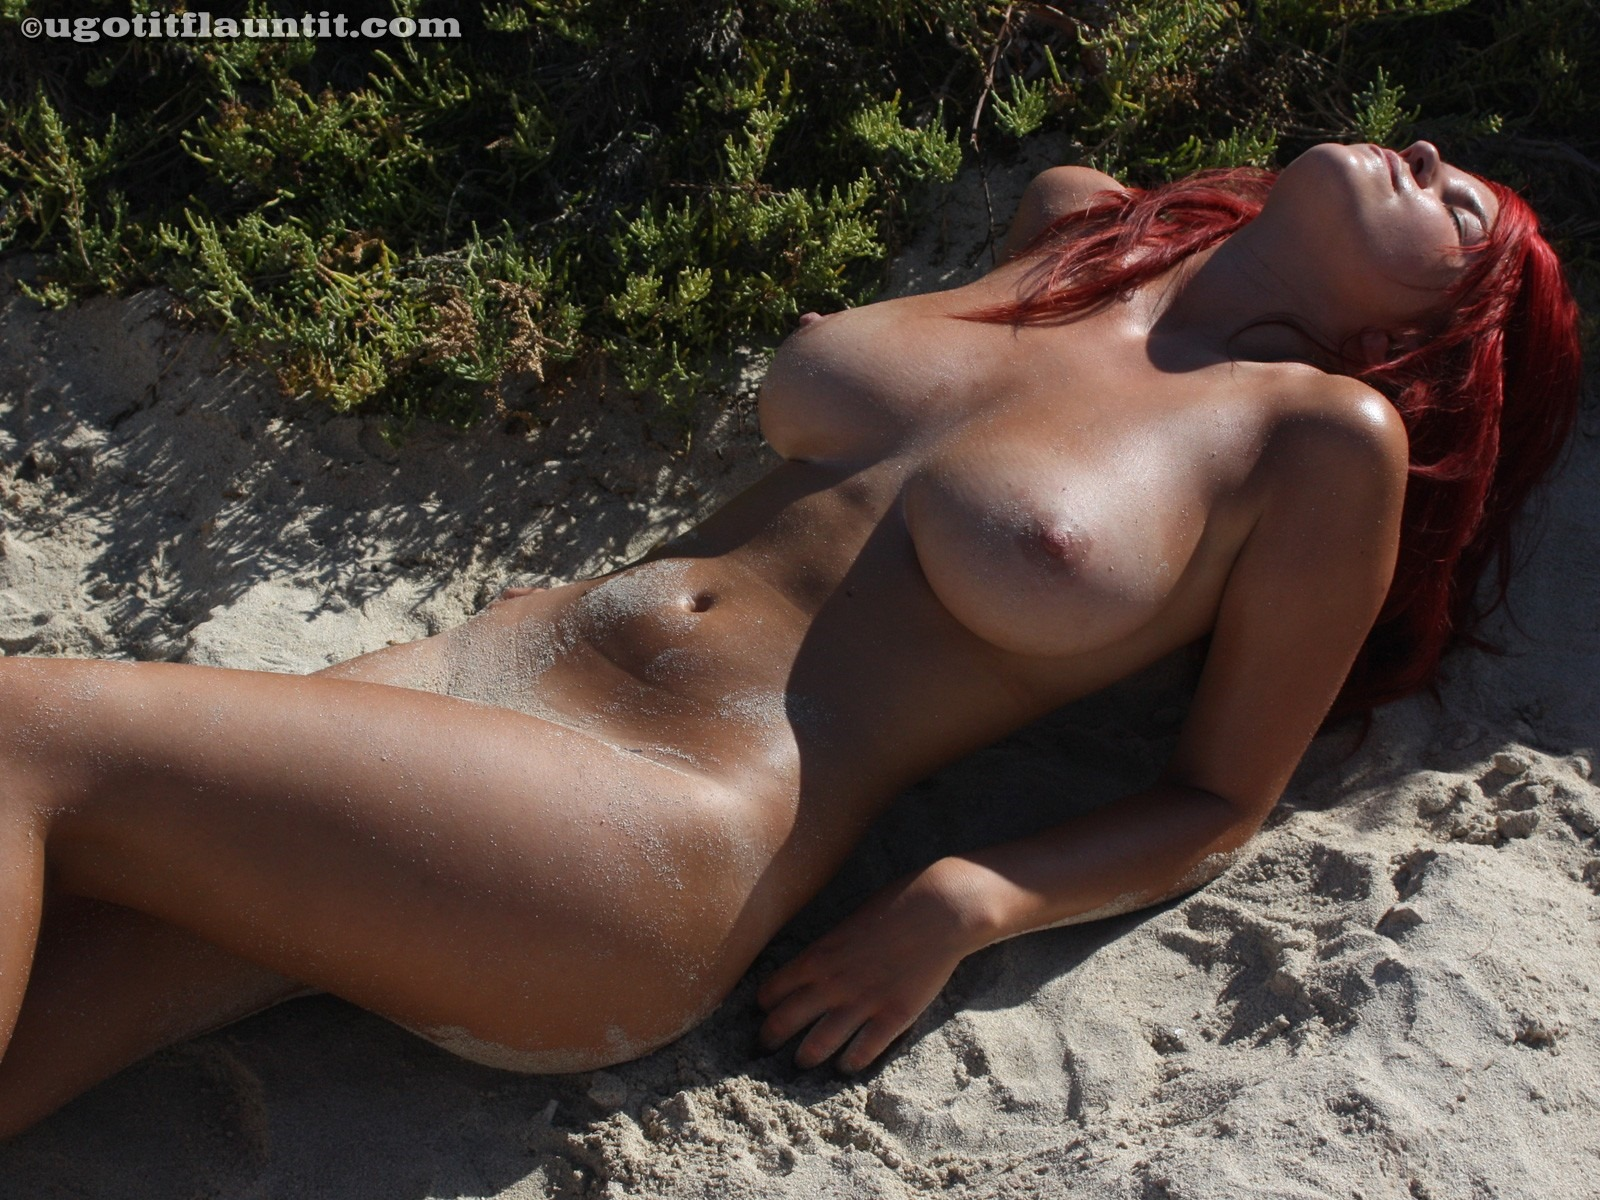 Consider, that redhead nude on beach share